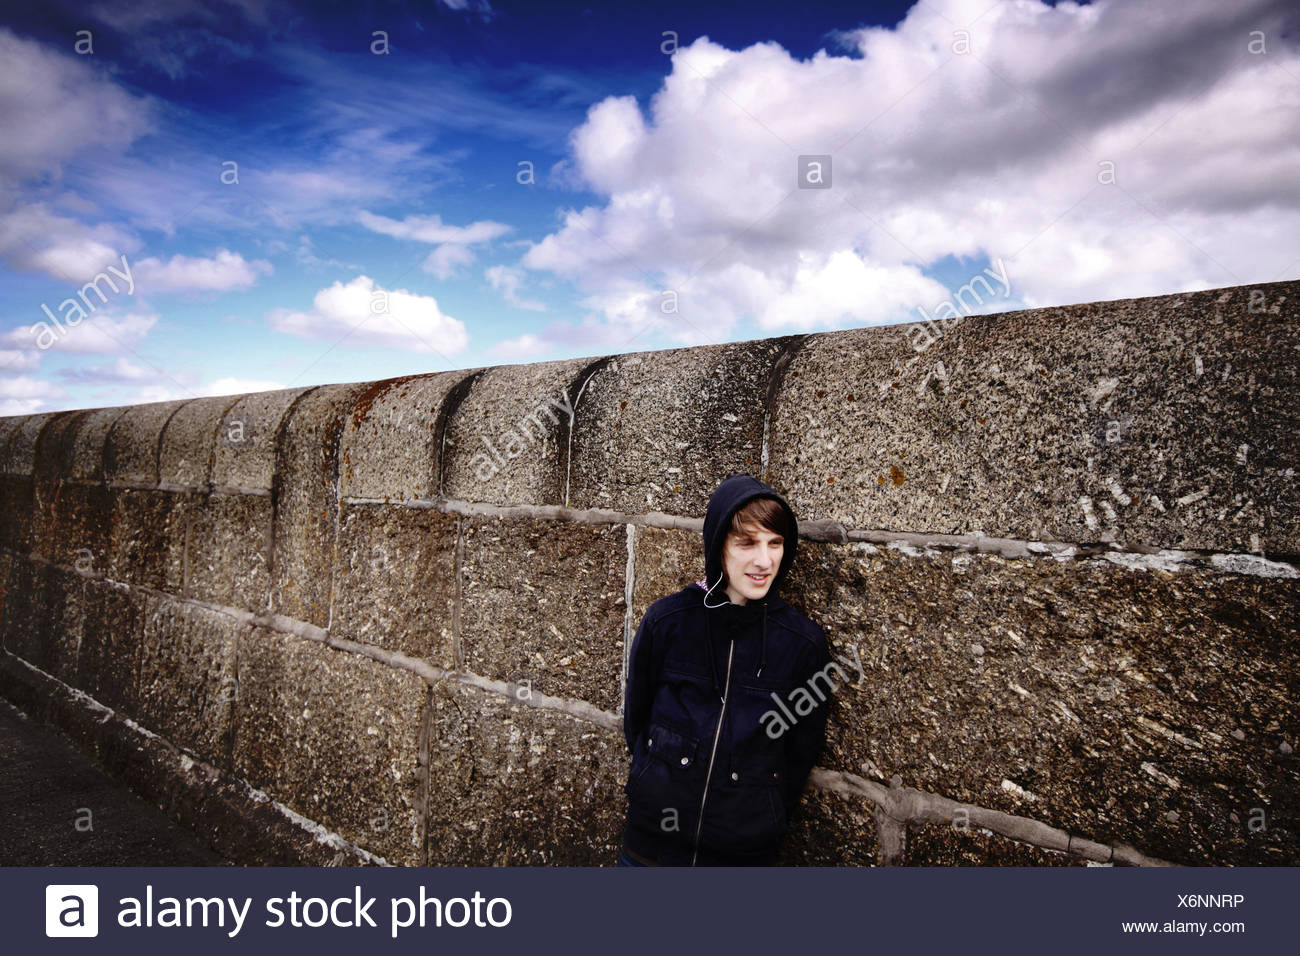 teenager leaning against a wall - Stock Image